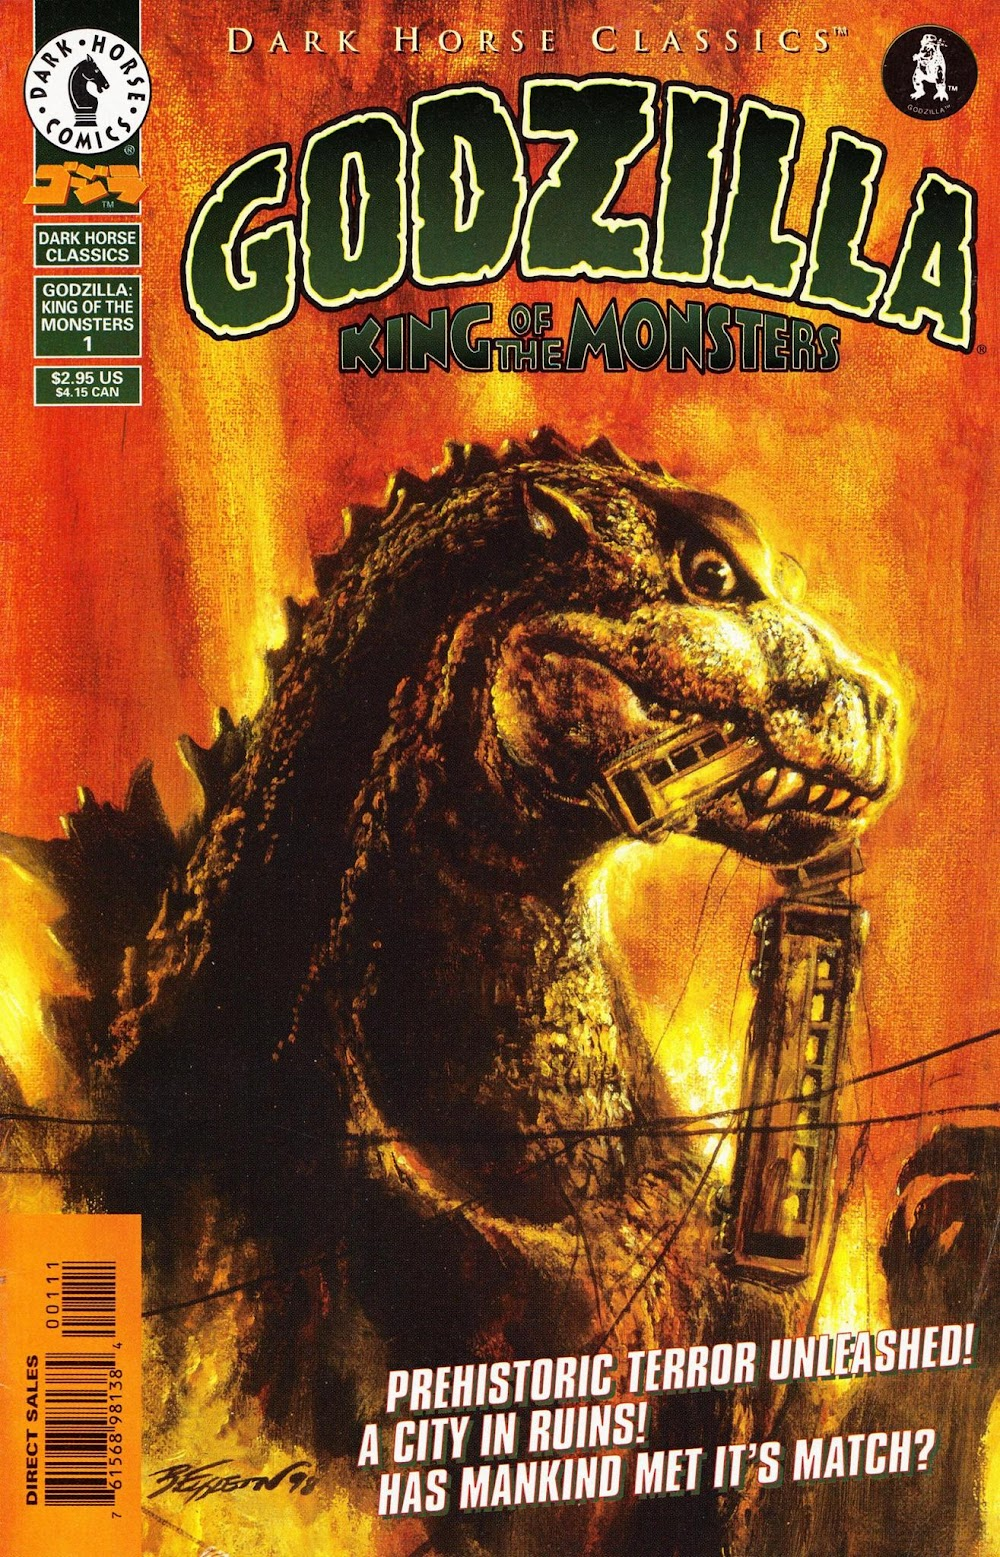 Godzilla - King of the Monsters (1998) - complete